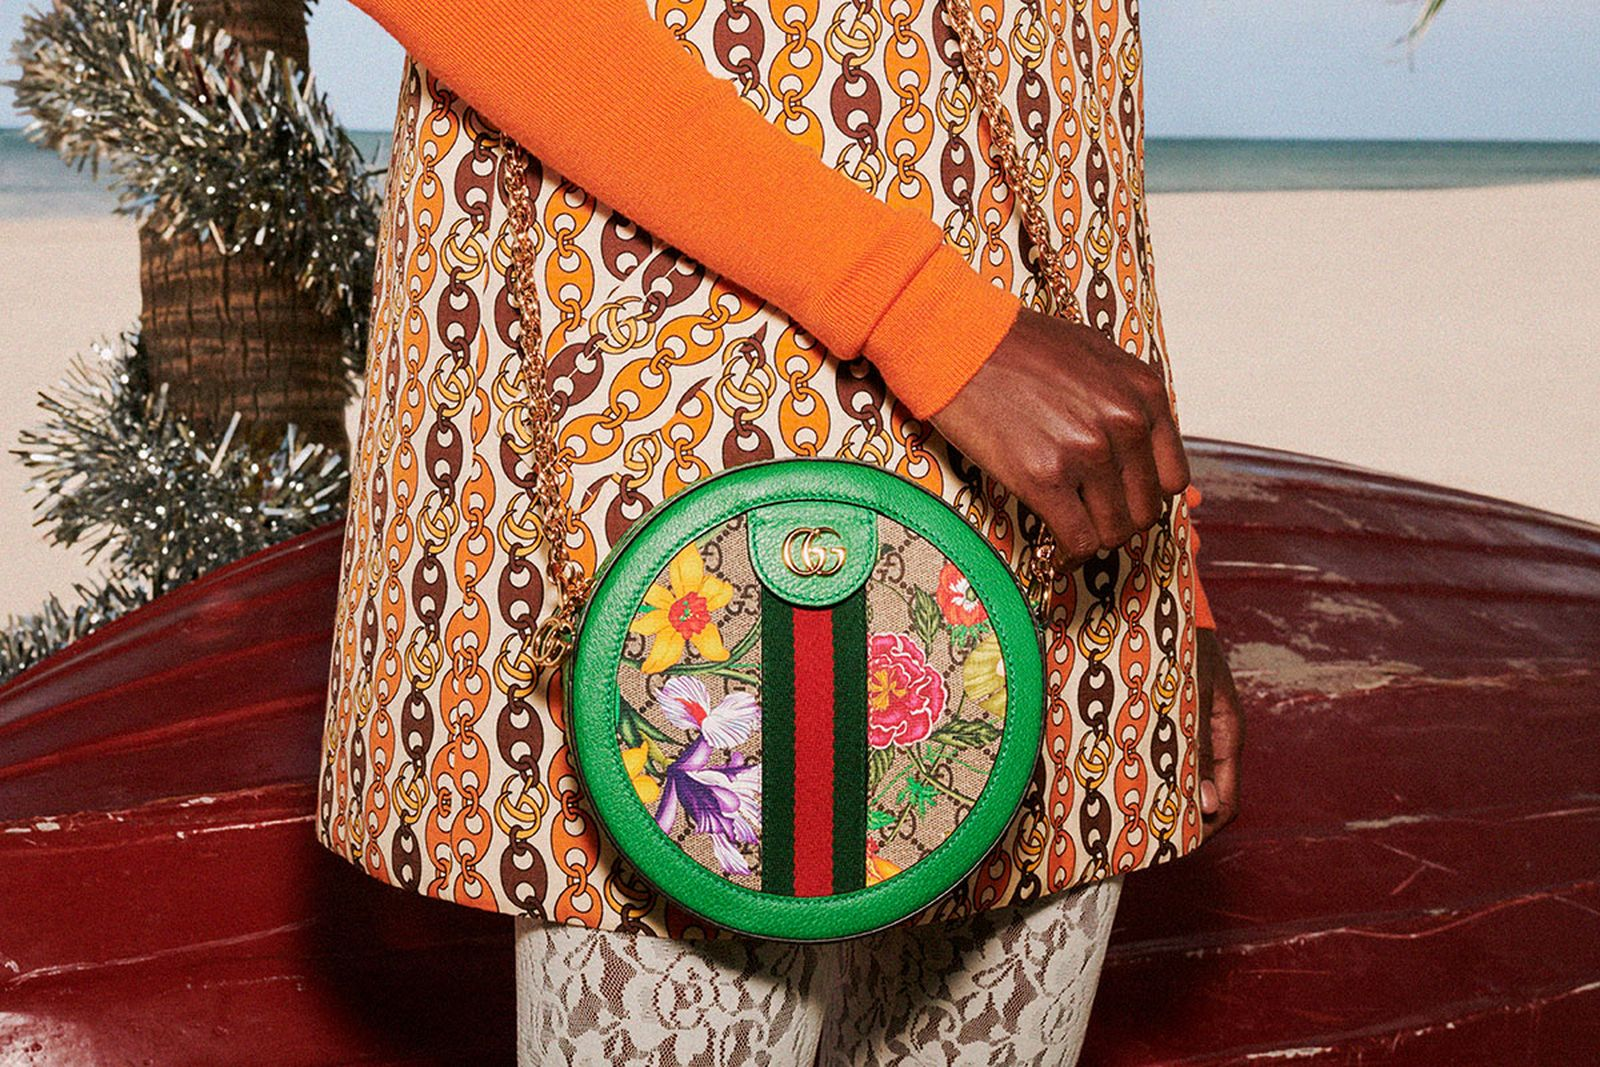 Gucci Gift Giving campaign 2019